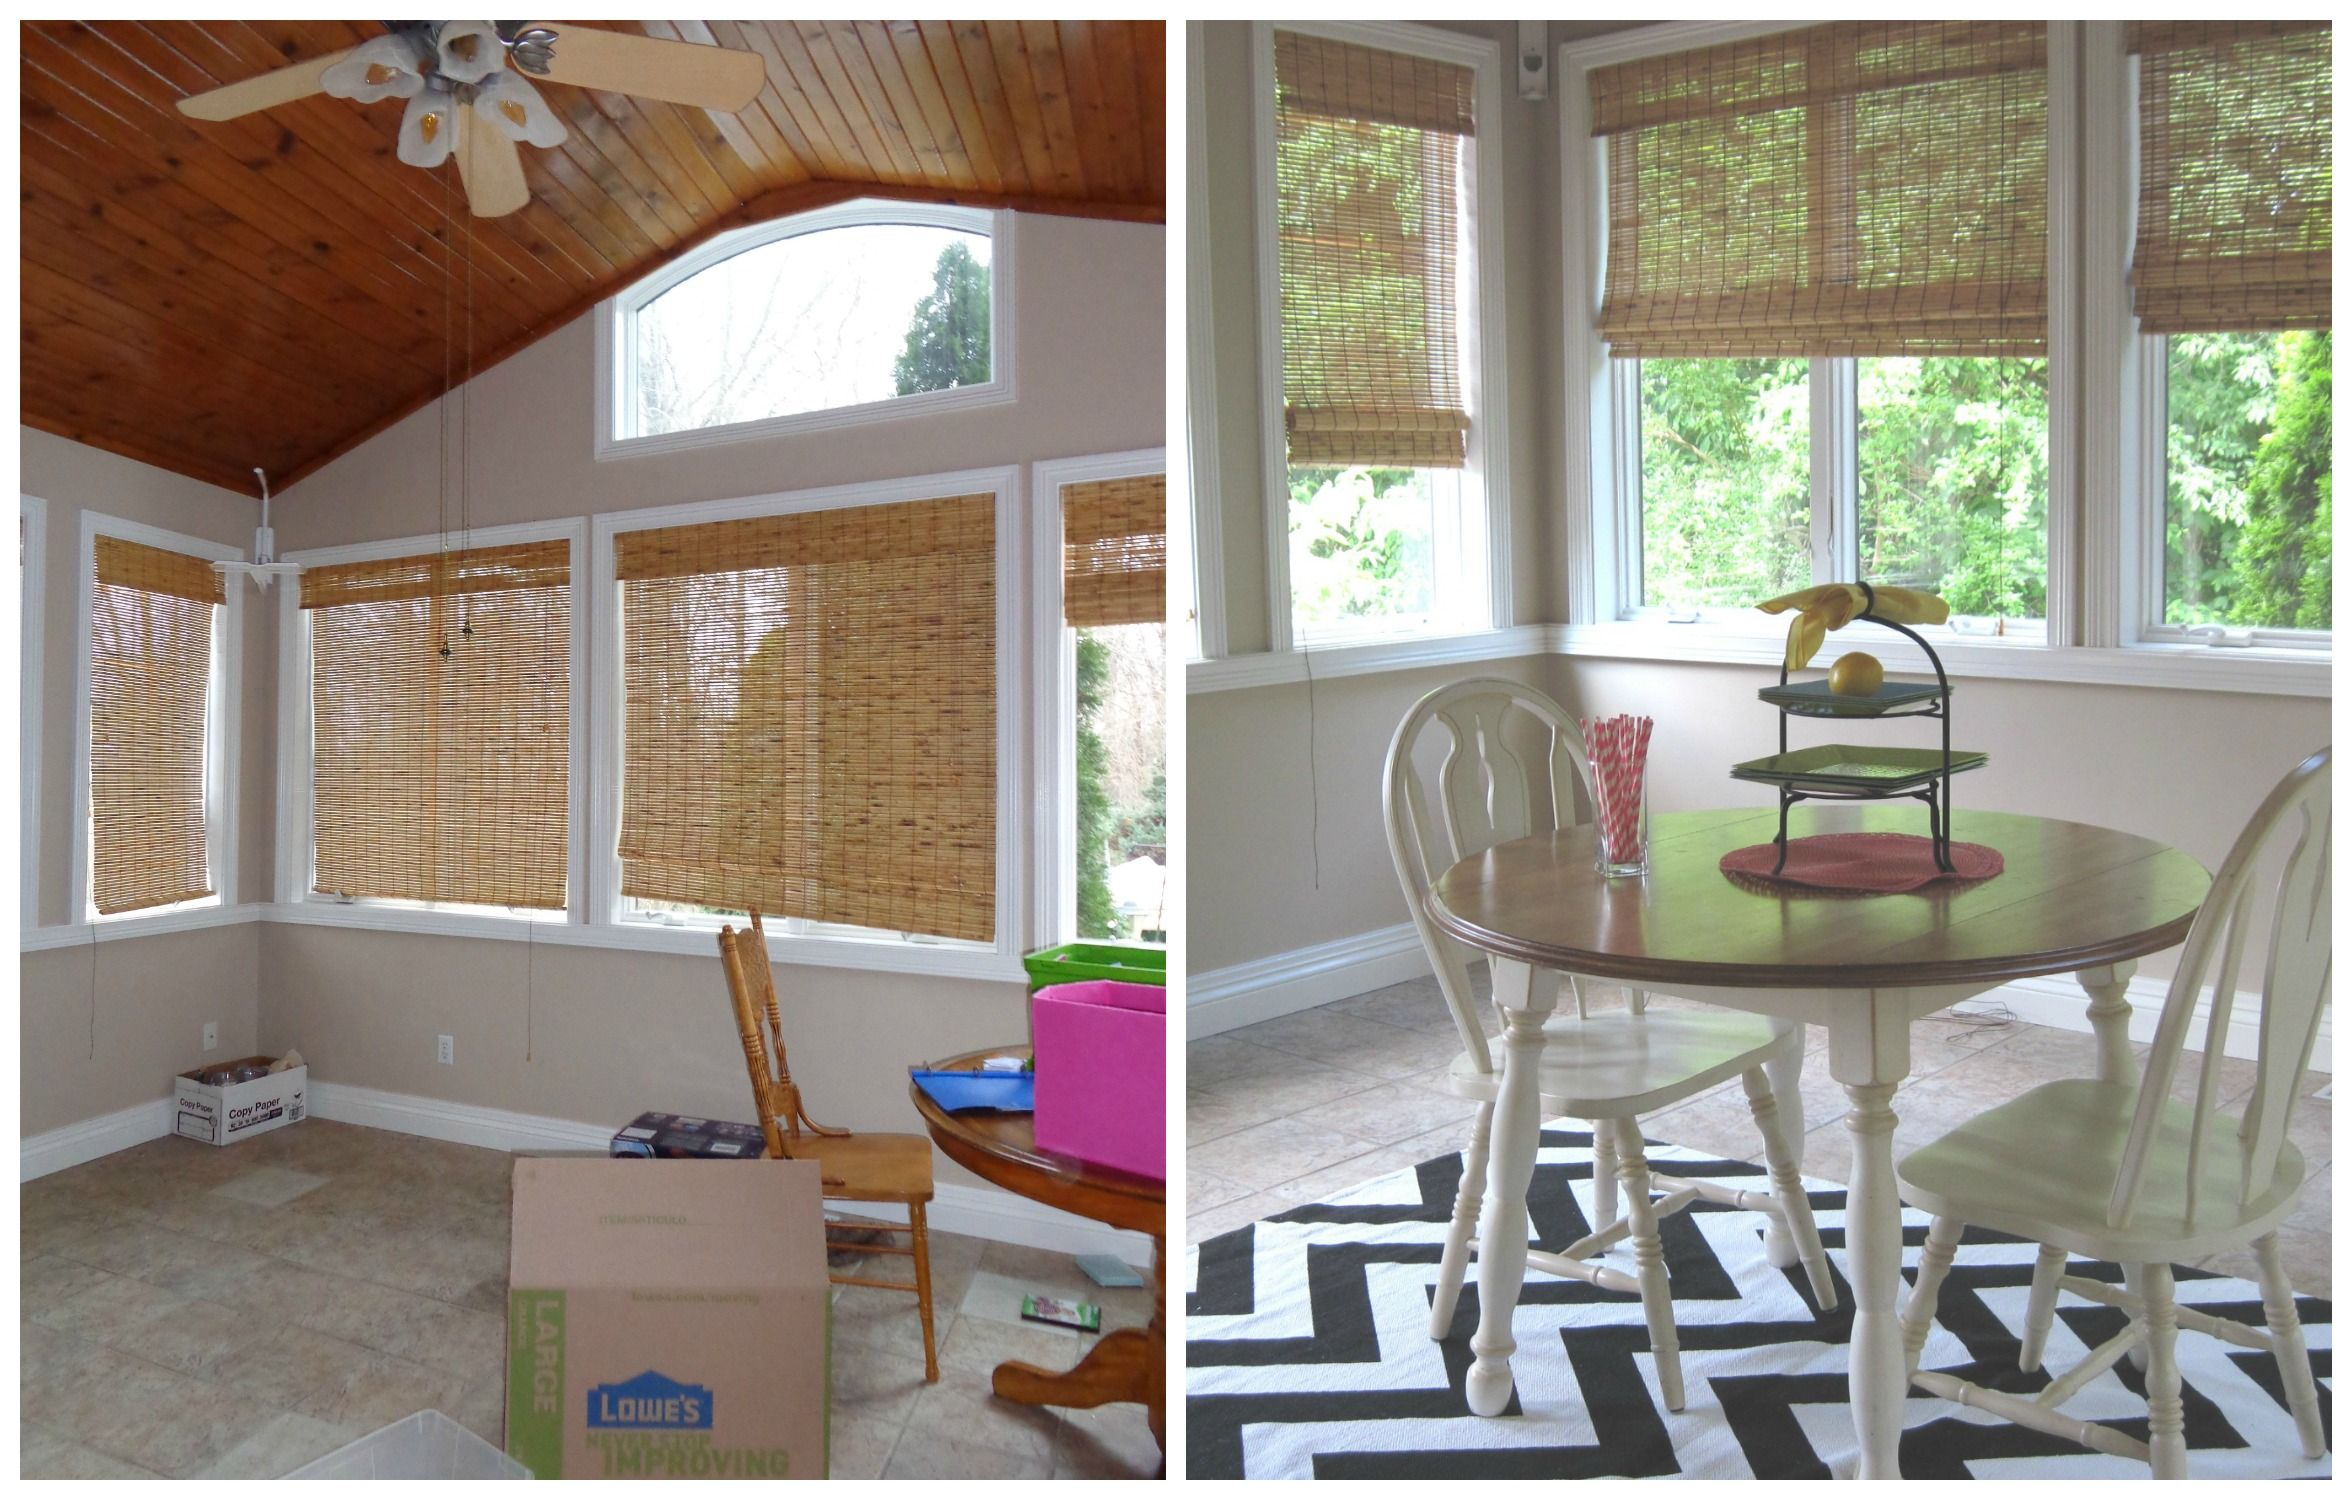 Home staging a sun room before and after in Bristol, Indiana